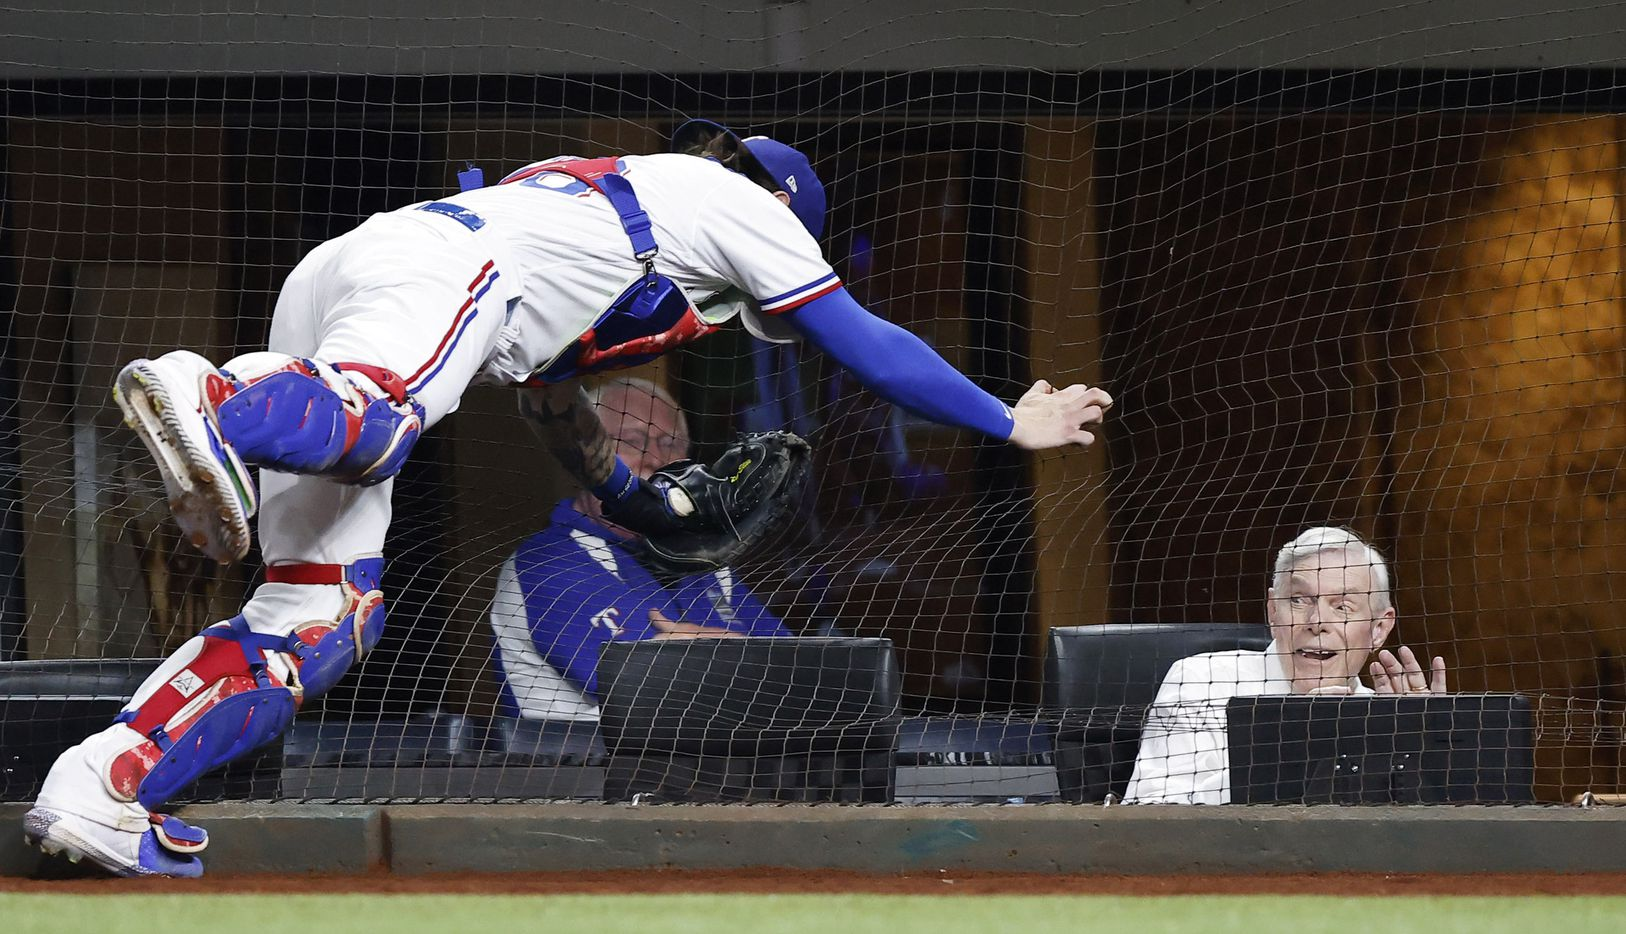 Texas Rangers co-owner and co-chairman Ray Davis reacts as Texas Rangers catcher Jonah Heim (28) attempts to catch an Oakland Athletics foul ball against the netting in the eighth inning at Globe Life Field in Arlington, Saturday, August 14, 2021.(Tom Fox/The Dallas Morning News)